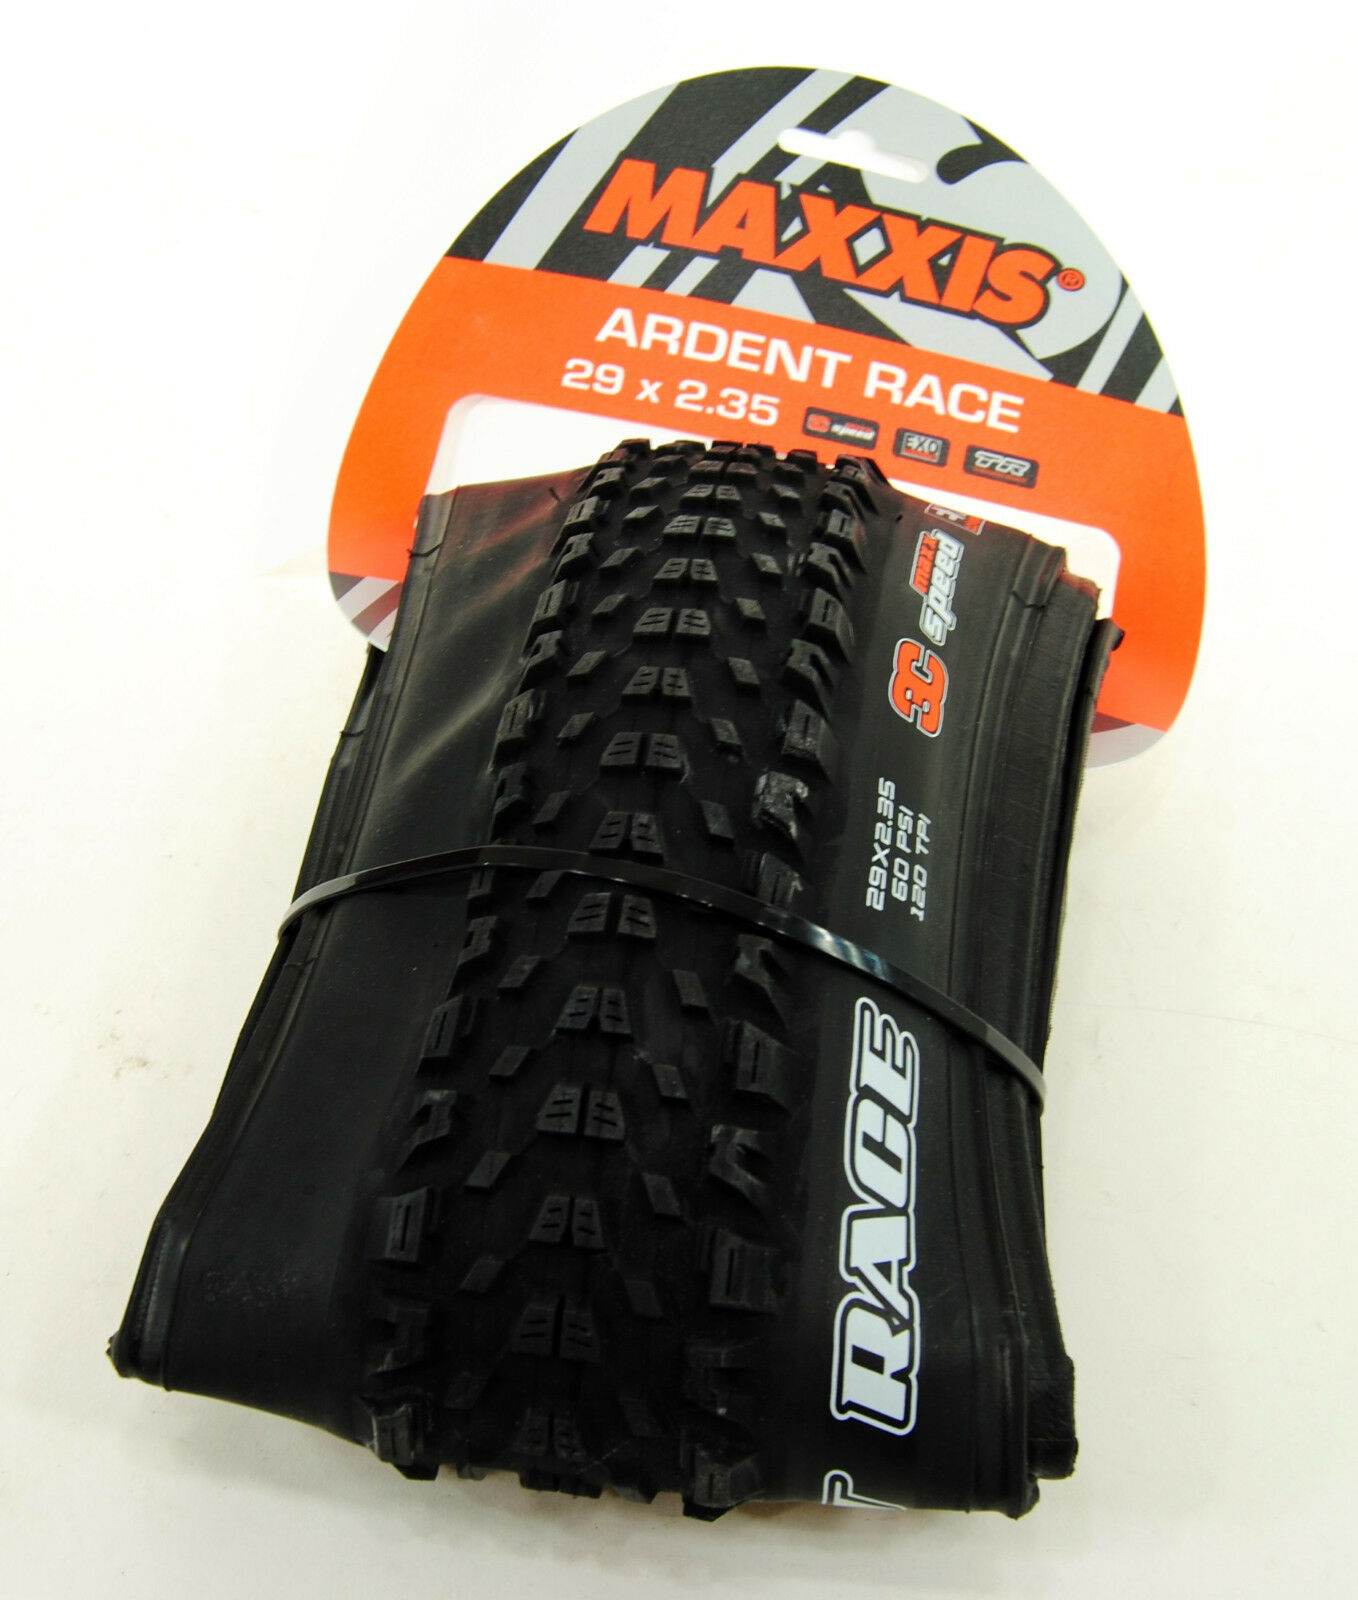 Maxxis Ardent Race 29x2.35 120 3c EXO  TR Mountain Bike Tire,Tubeless Ready  online shopping